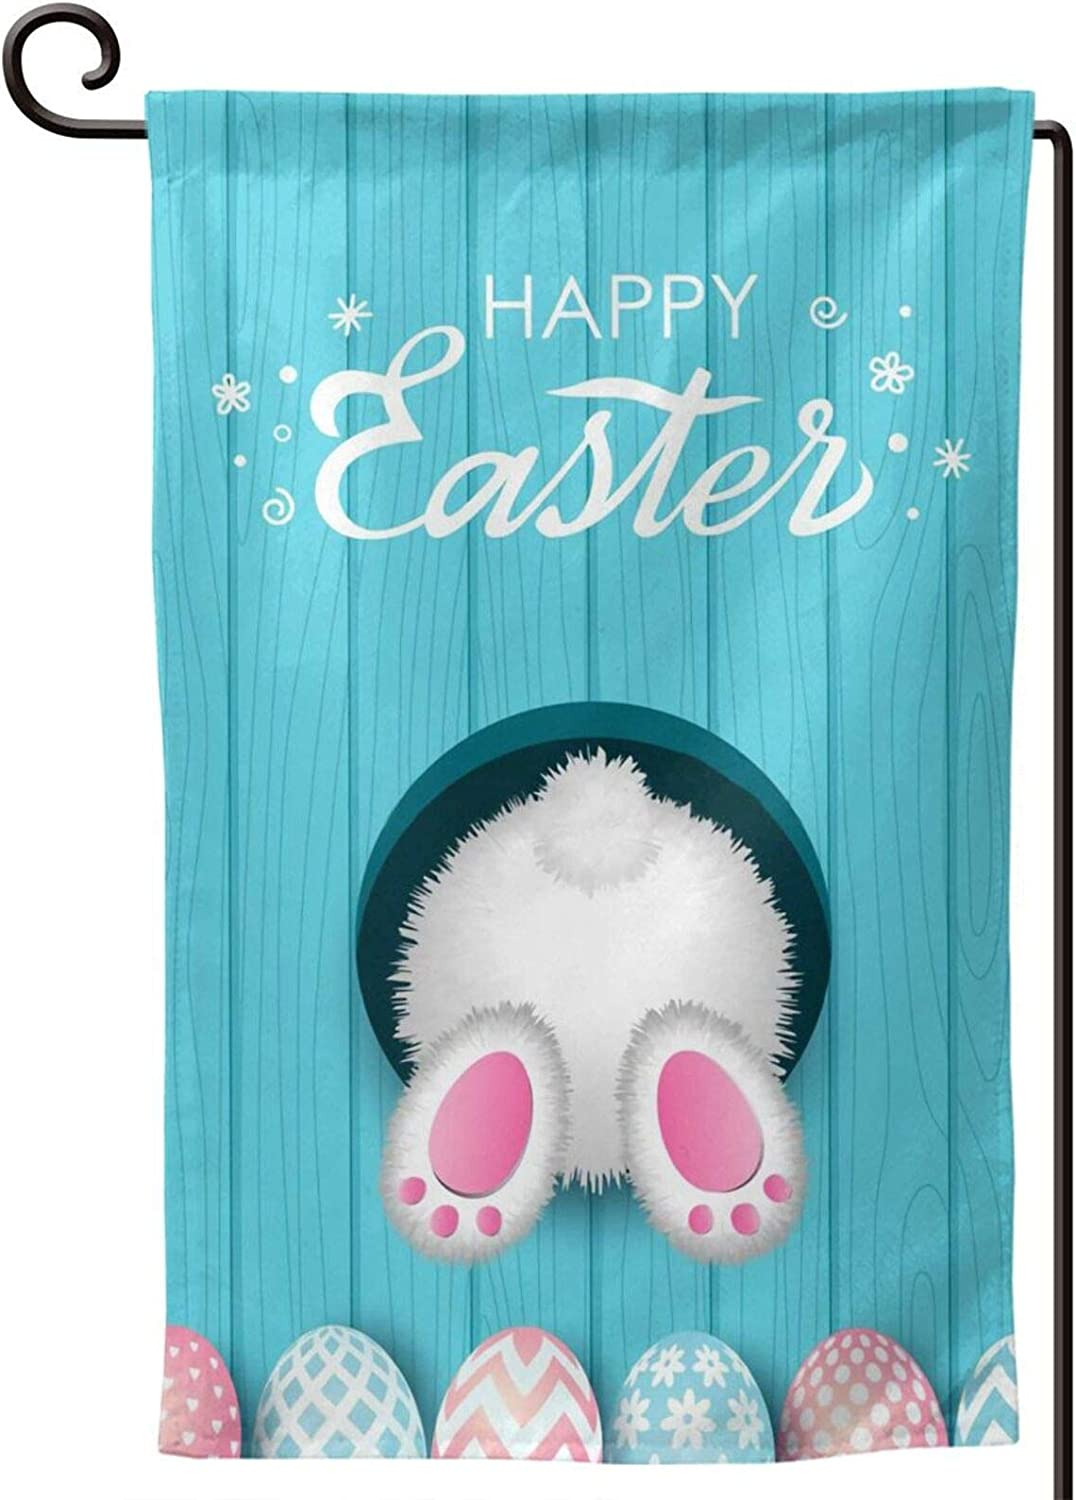 Garden Flag Happy Easter Flags, Colorful Bunny Eggs Family Flag Banner 12.5x18 inch, Fade Resistant Double Sided Novelty Yard Flags for Home Garden (color 1) by YIEASY